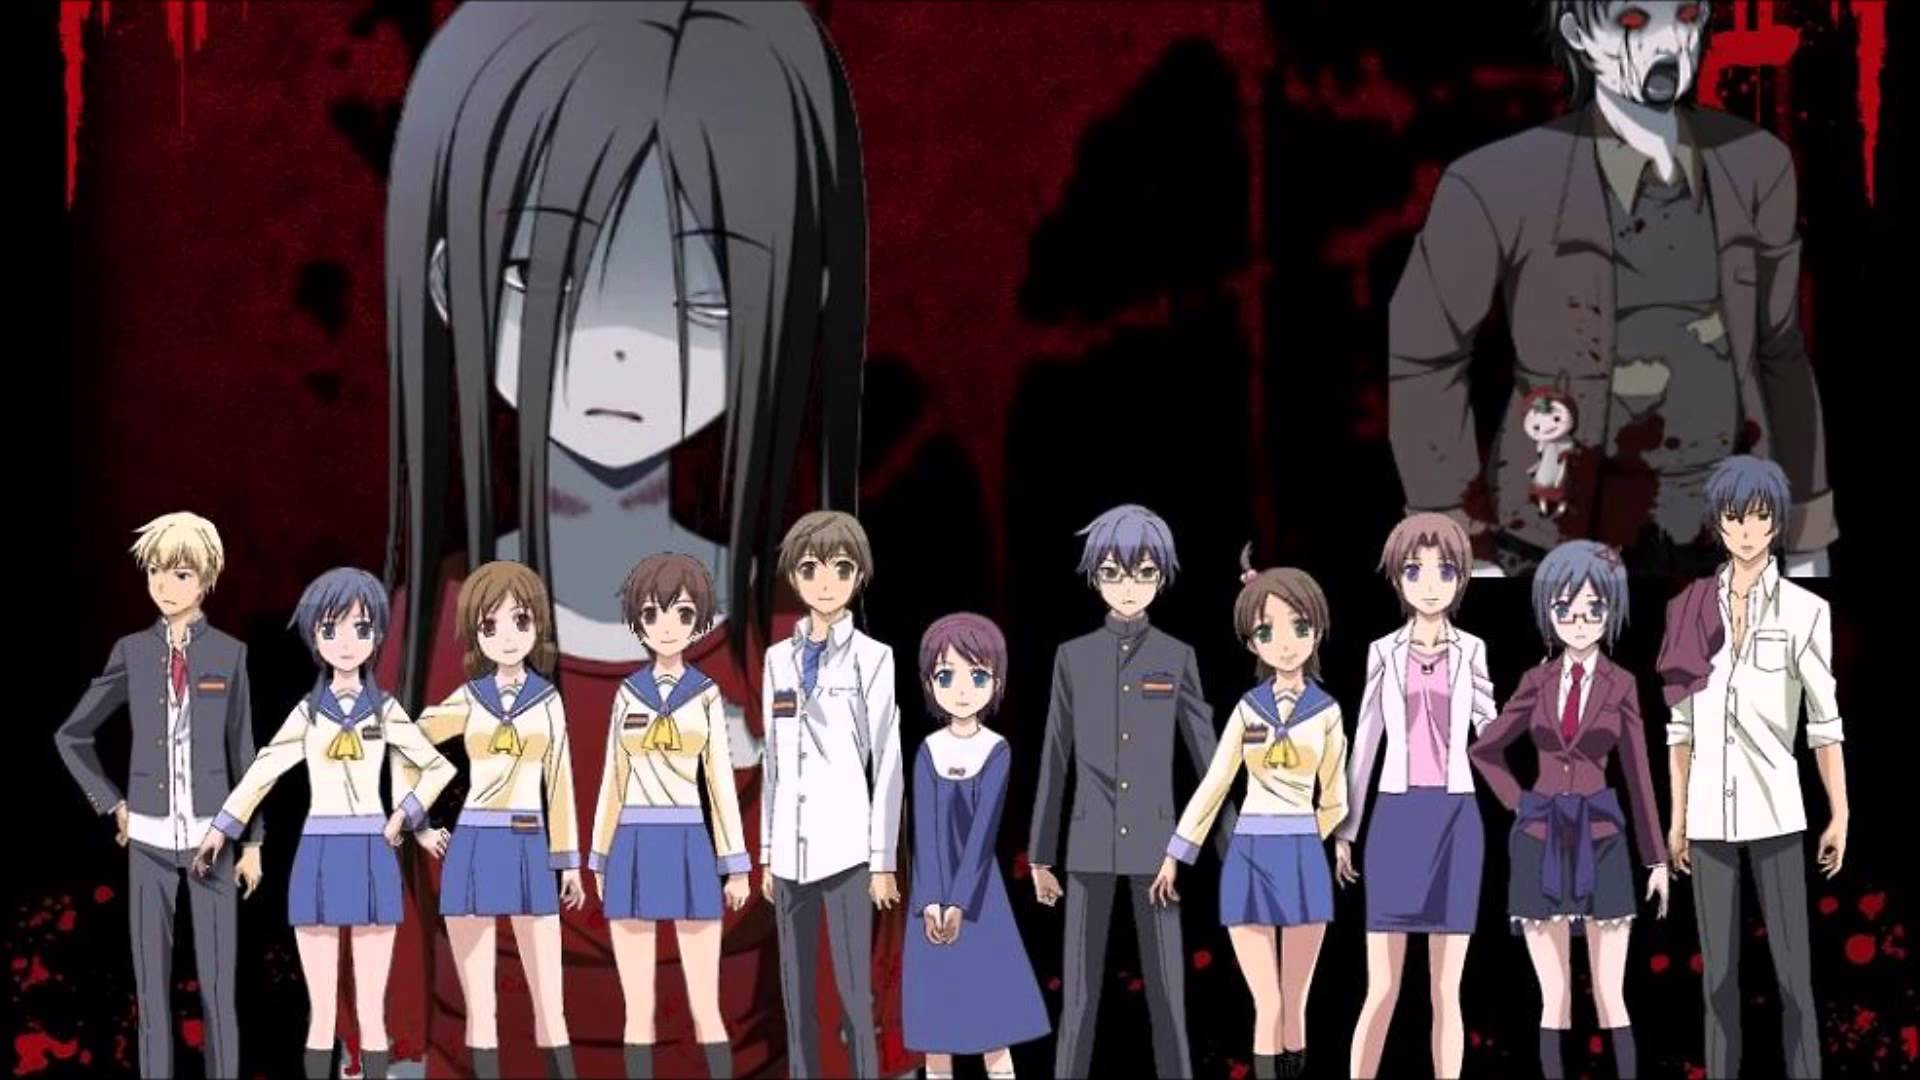 Steam Workshop Corpse Party Tortured Souls Anime Characters